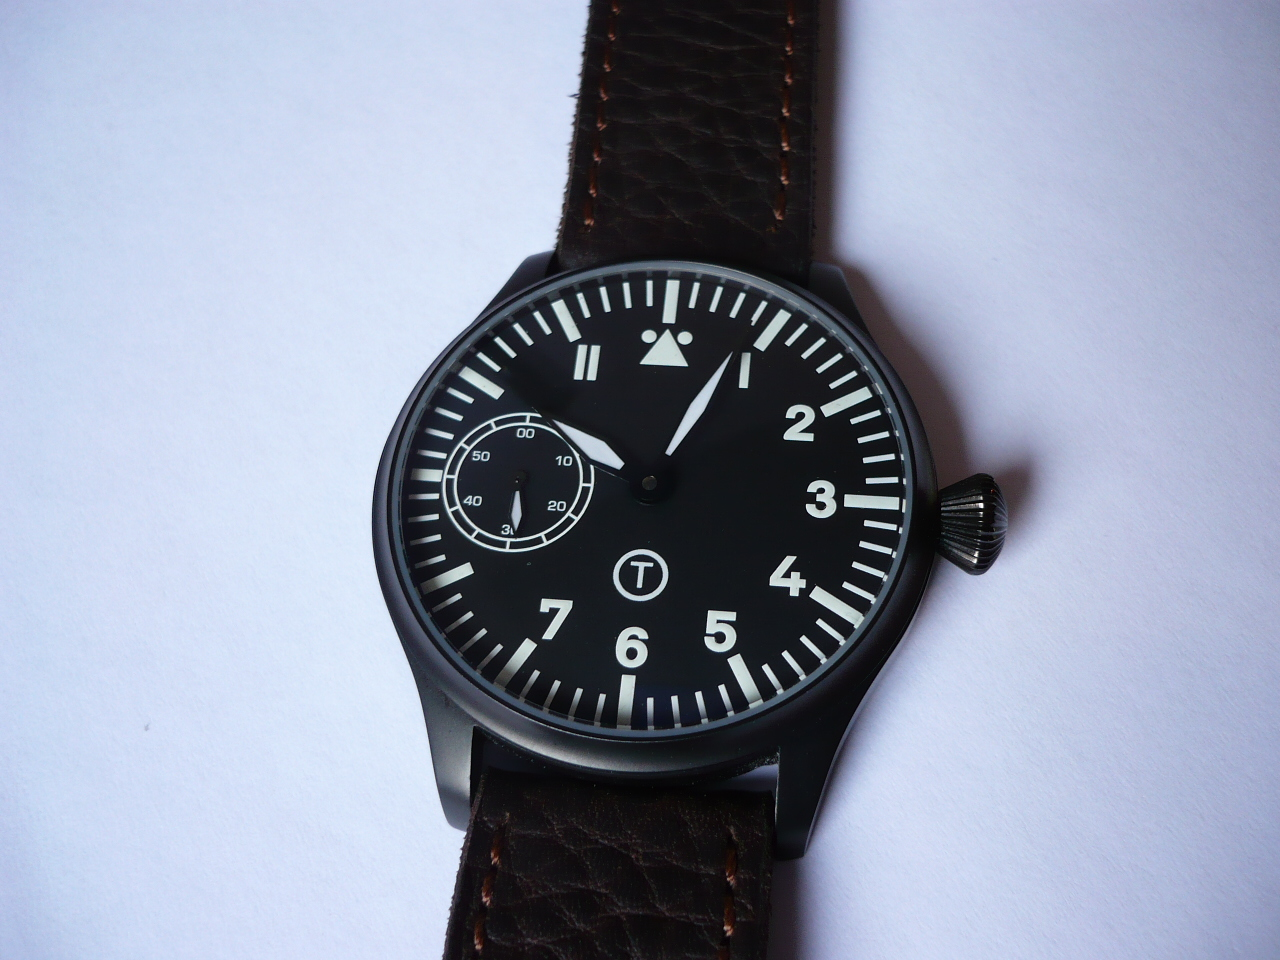 erledigt 44mm b uhr pilot flieger pvd unitas 6497. Black Bedroom Furniture Sets. Home Design Ideas